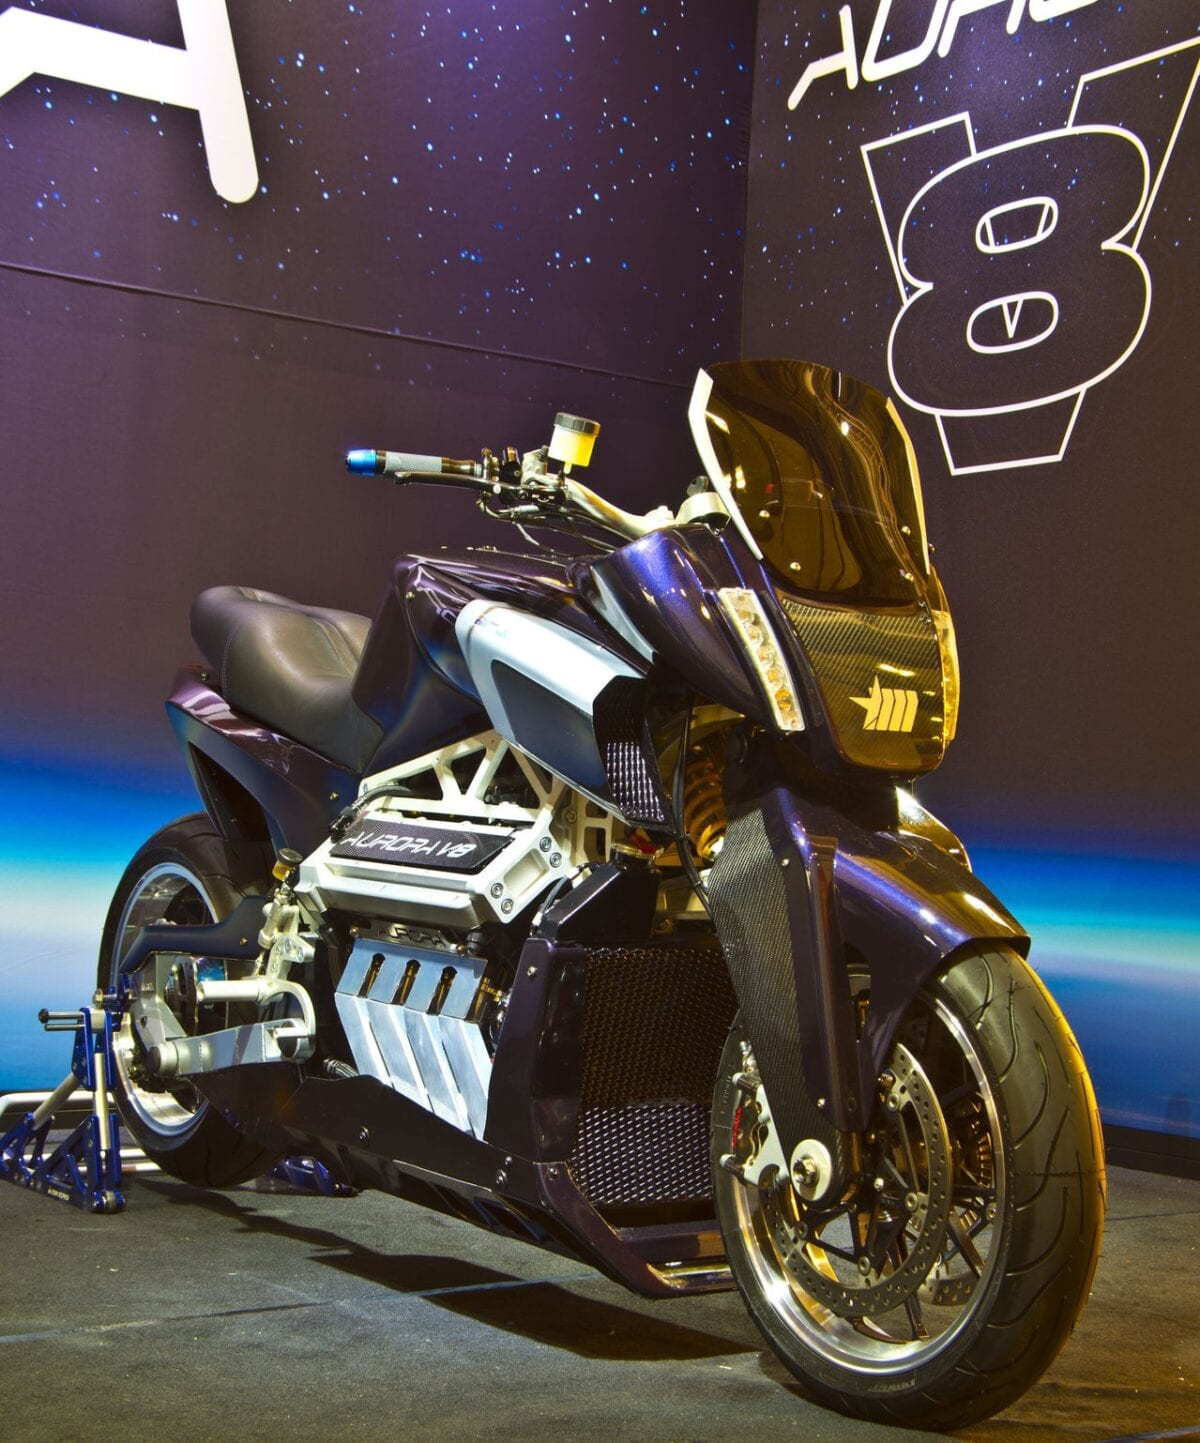 aurora-hellfire-oz26-v8-bike-packs-417-hp-and-319-nm-and-nothing-else-matters-photo-gallery_3